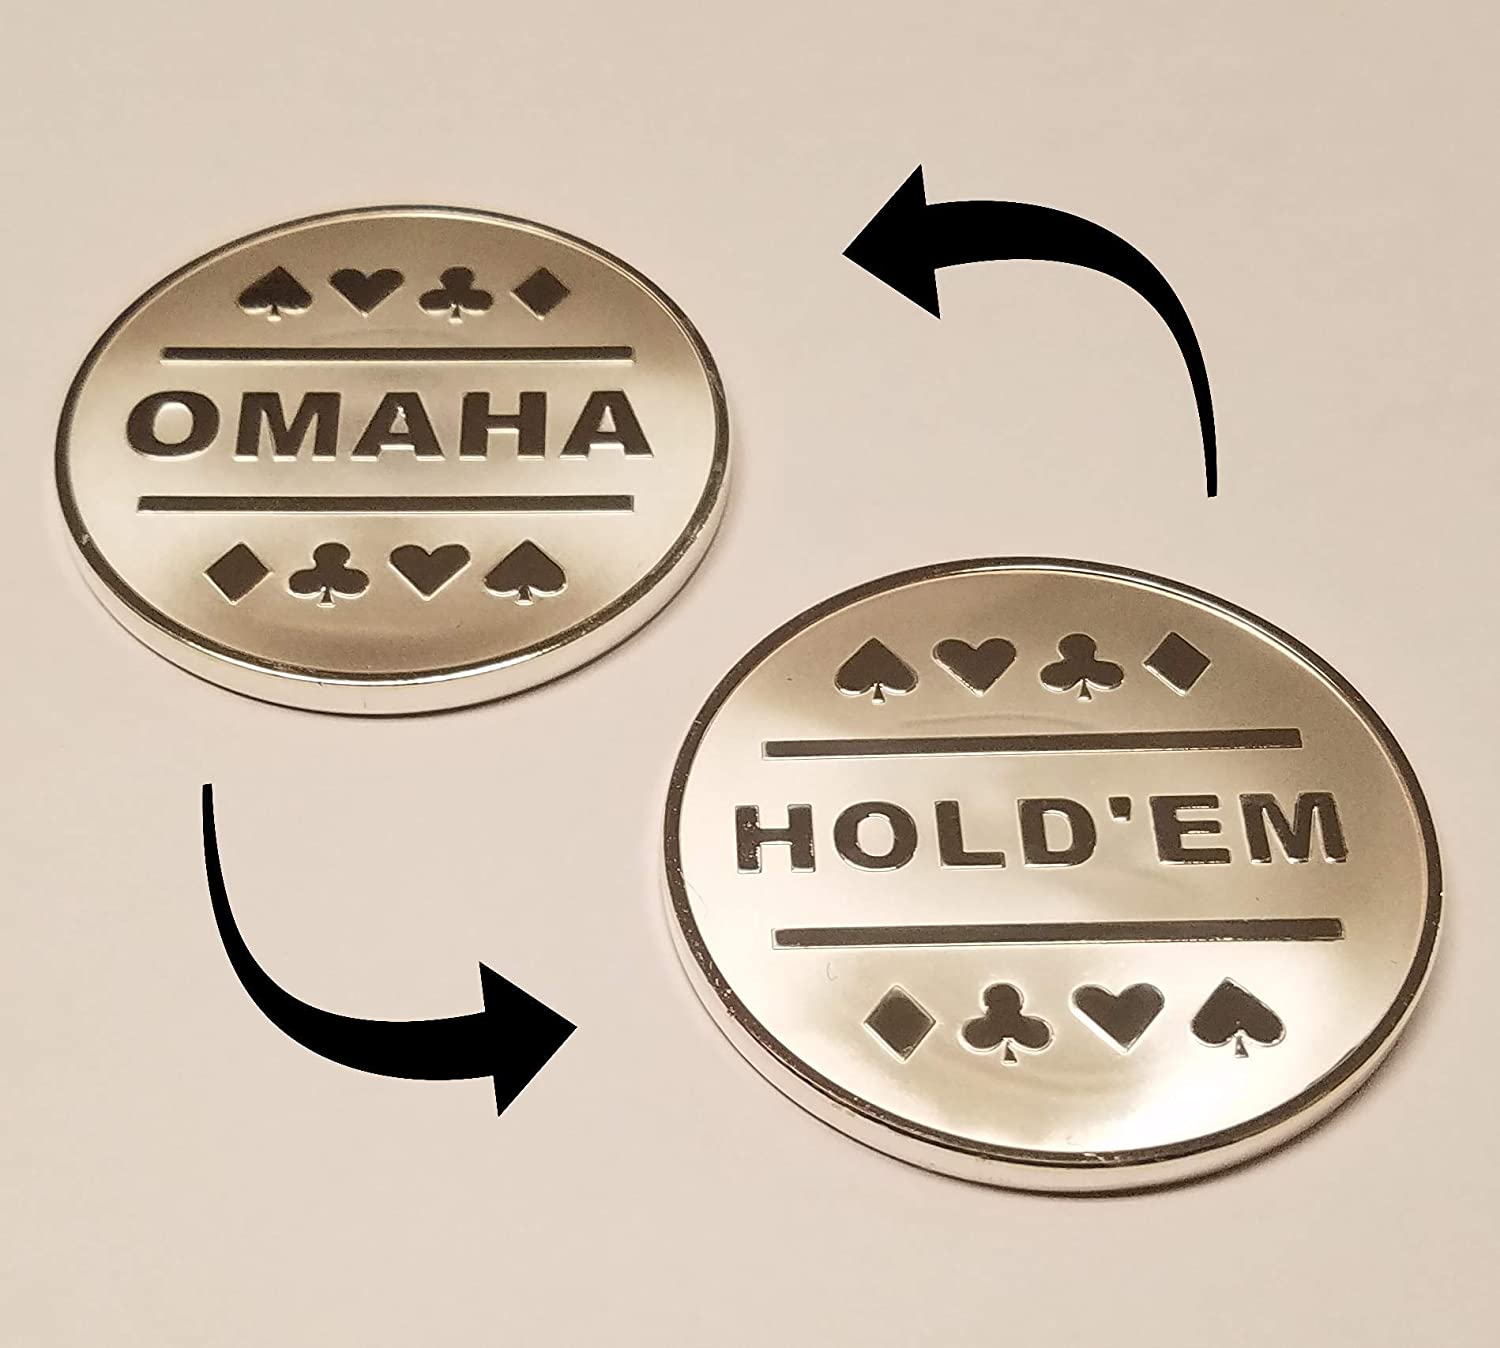 1x Omaha Texas Hold'em Silver Dealer Plated Great Button Metal Clearance SALE depot Limited time